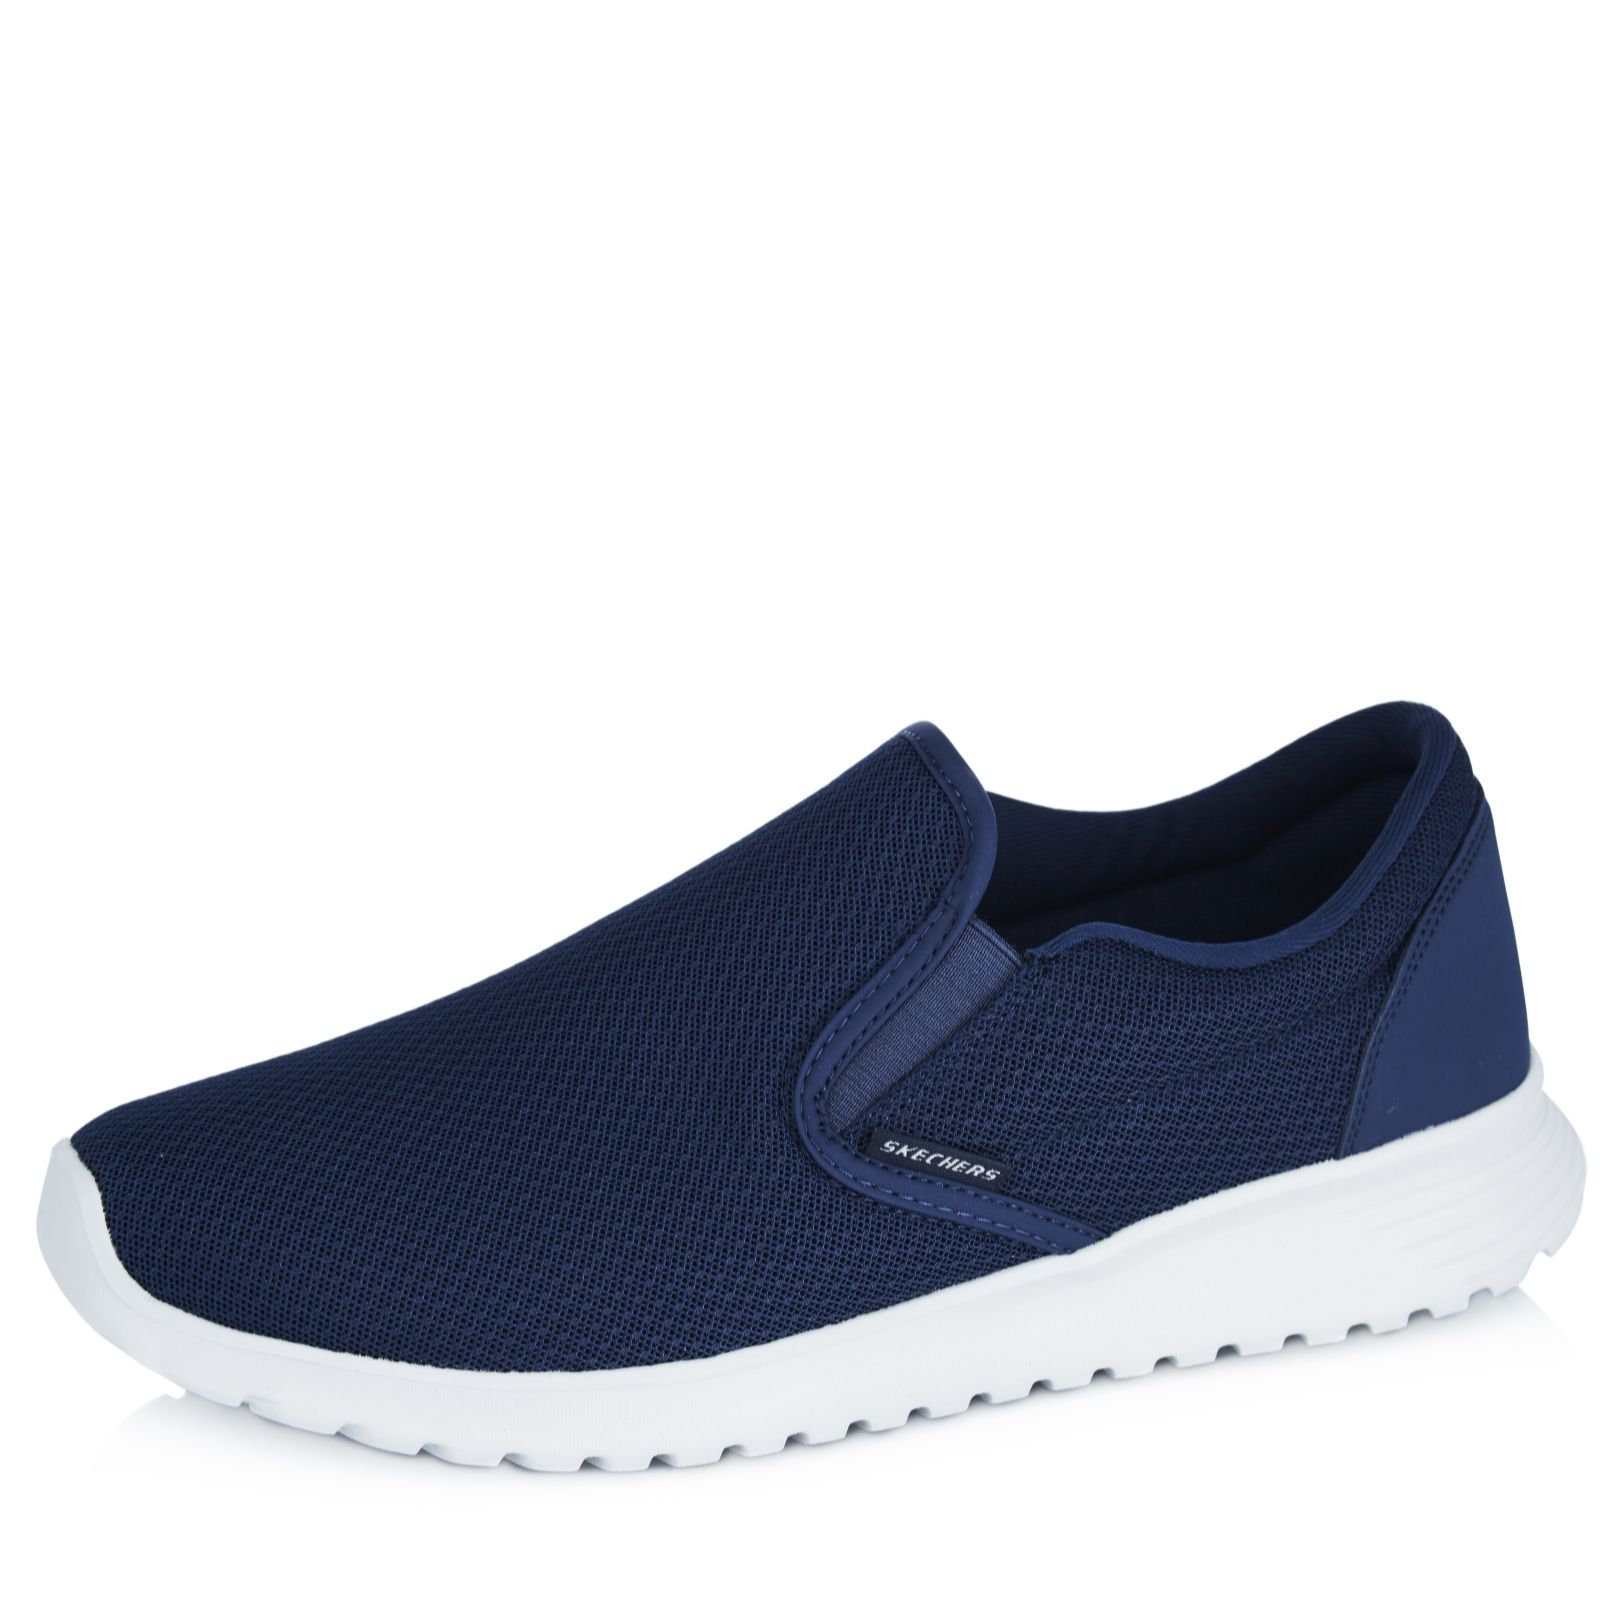 6573c2336dcd Skechers Zimsey Mesh Men s Slip On Shoe with Air Cooled Memory Foam ...